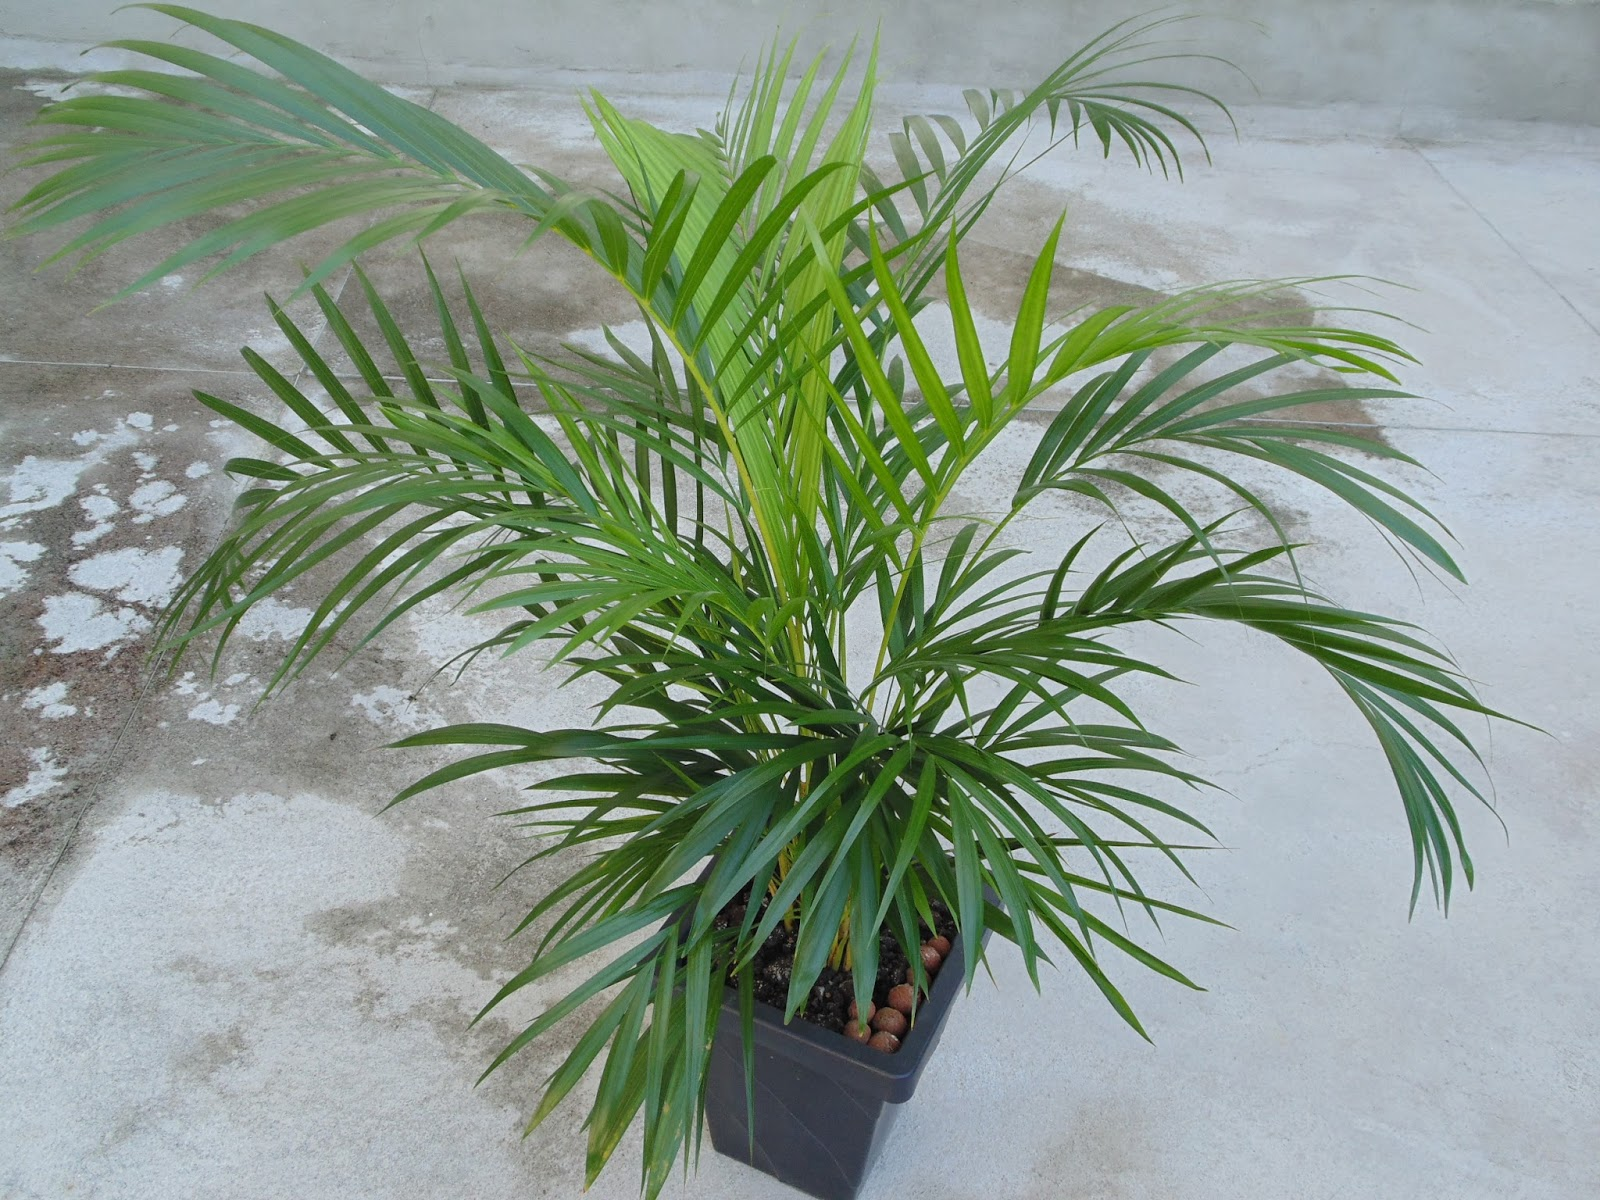 Plant photos for free areca palm dypsis lutescens for Pictures of areca palm plants